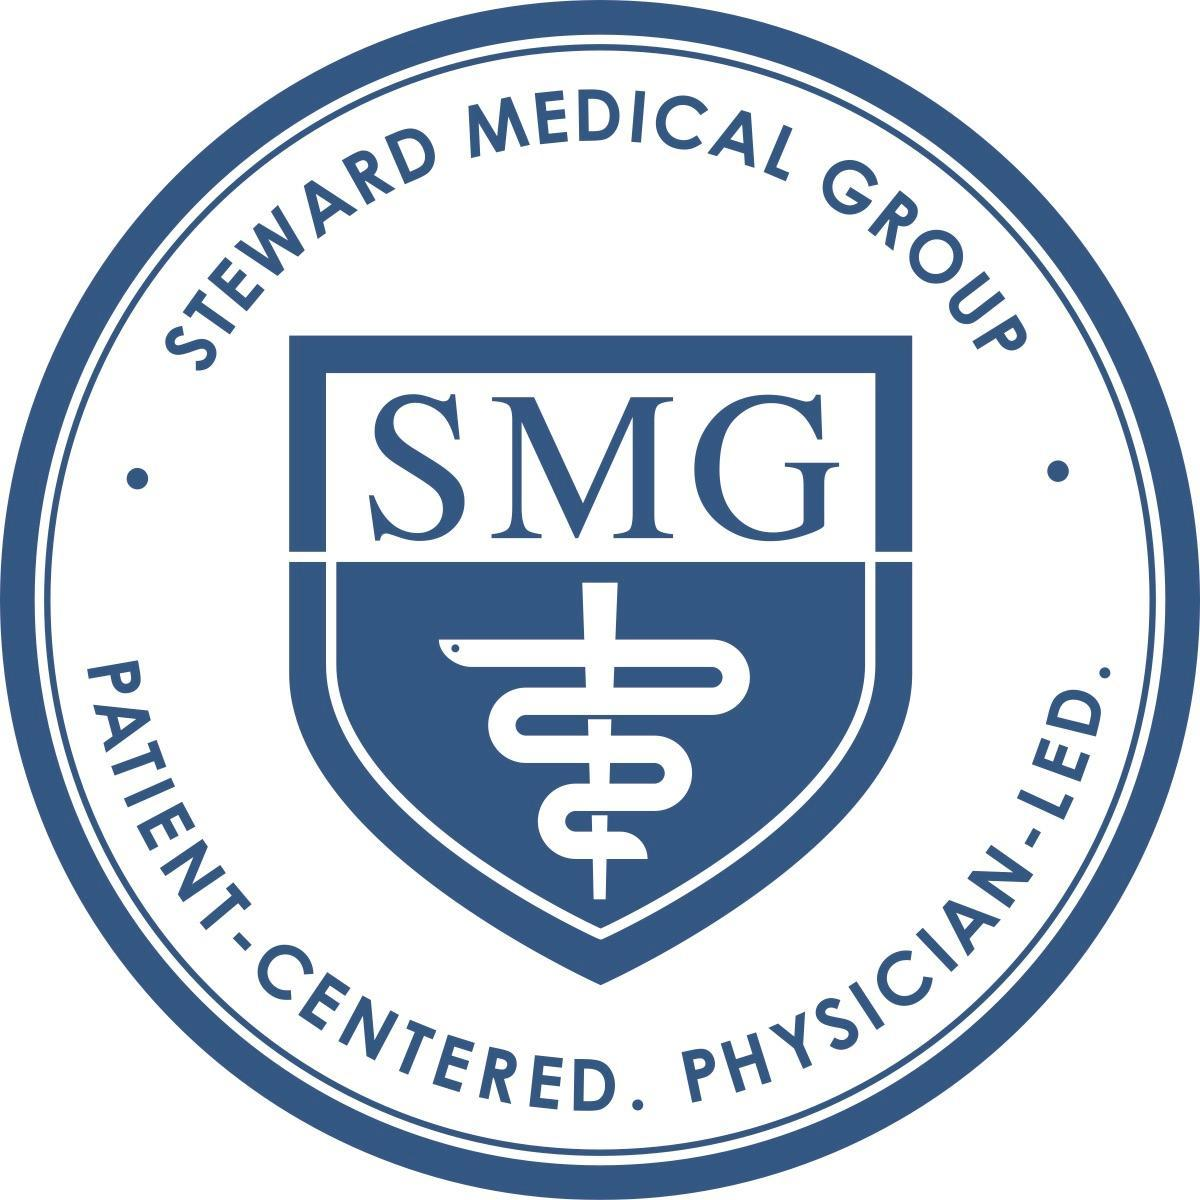 SMG Foxboro Family and Internal Medicine